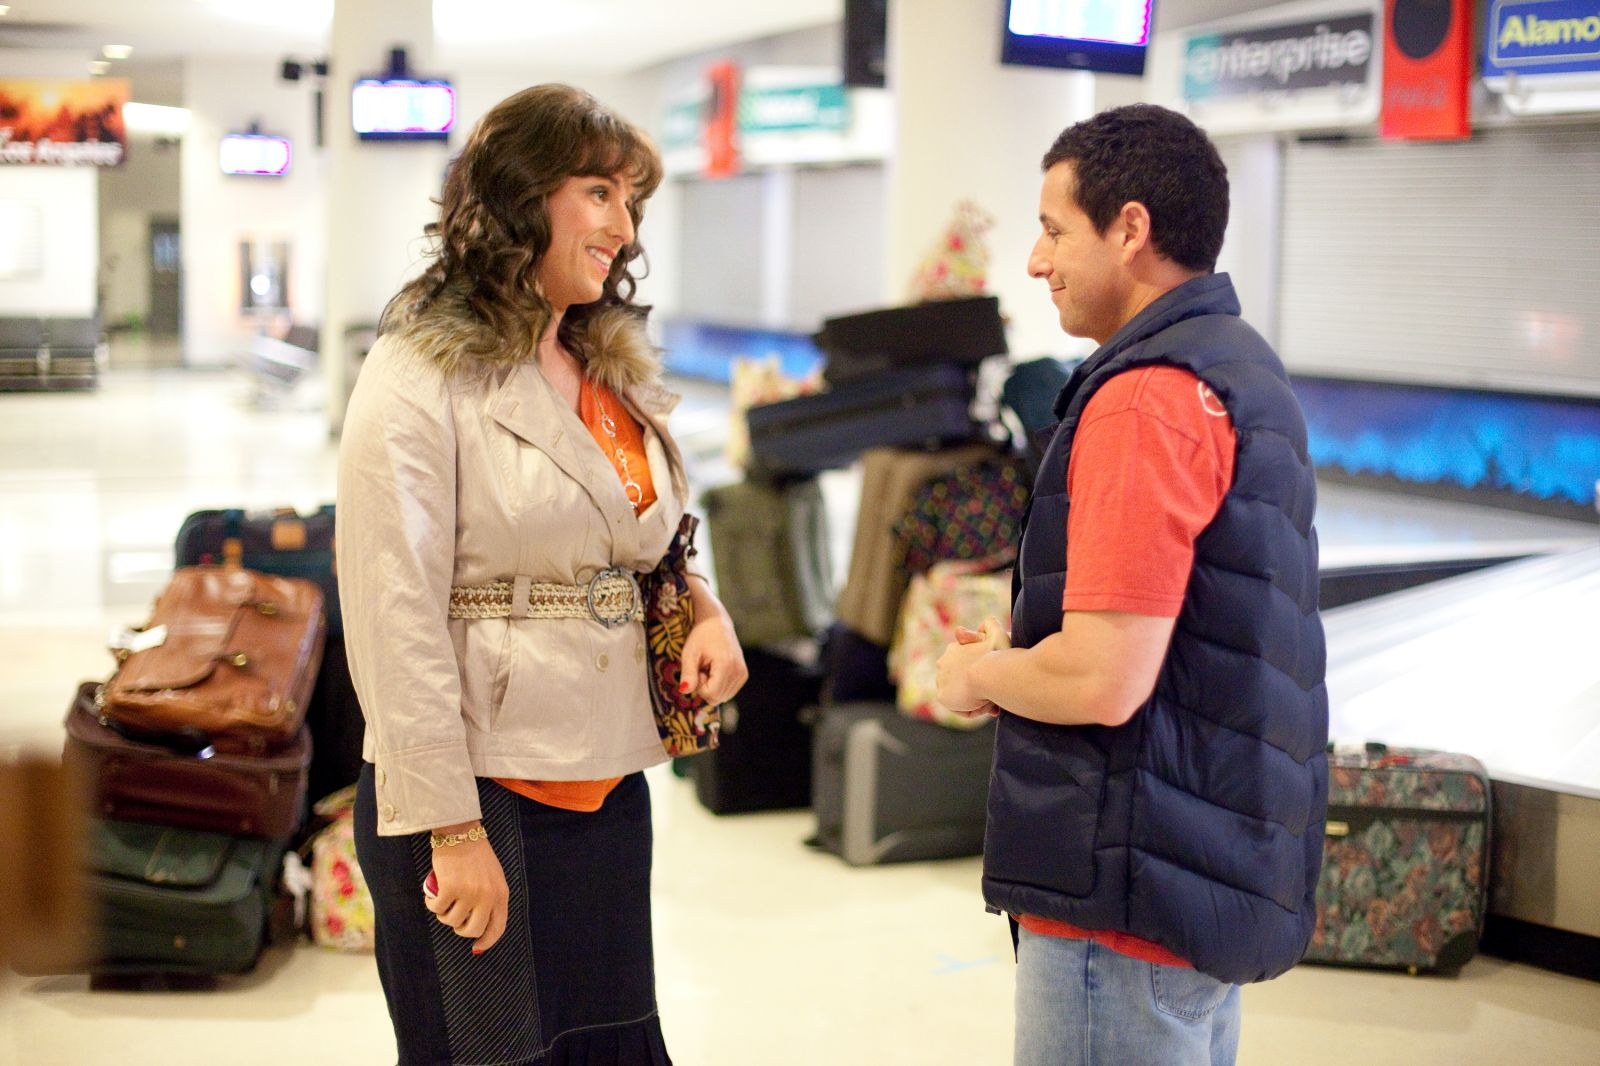 0a9c0d034d The cast was a pick of Sandler's best friend's list. Sandler was great in  the movie playing both parts. The crazy part was how good and a bit normal  he ...